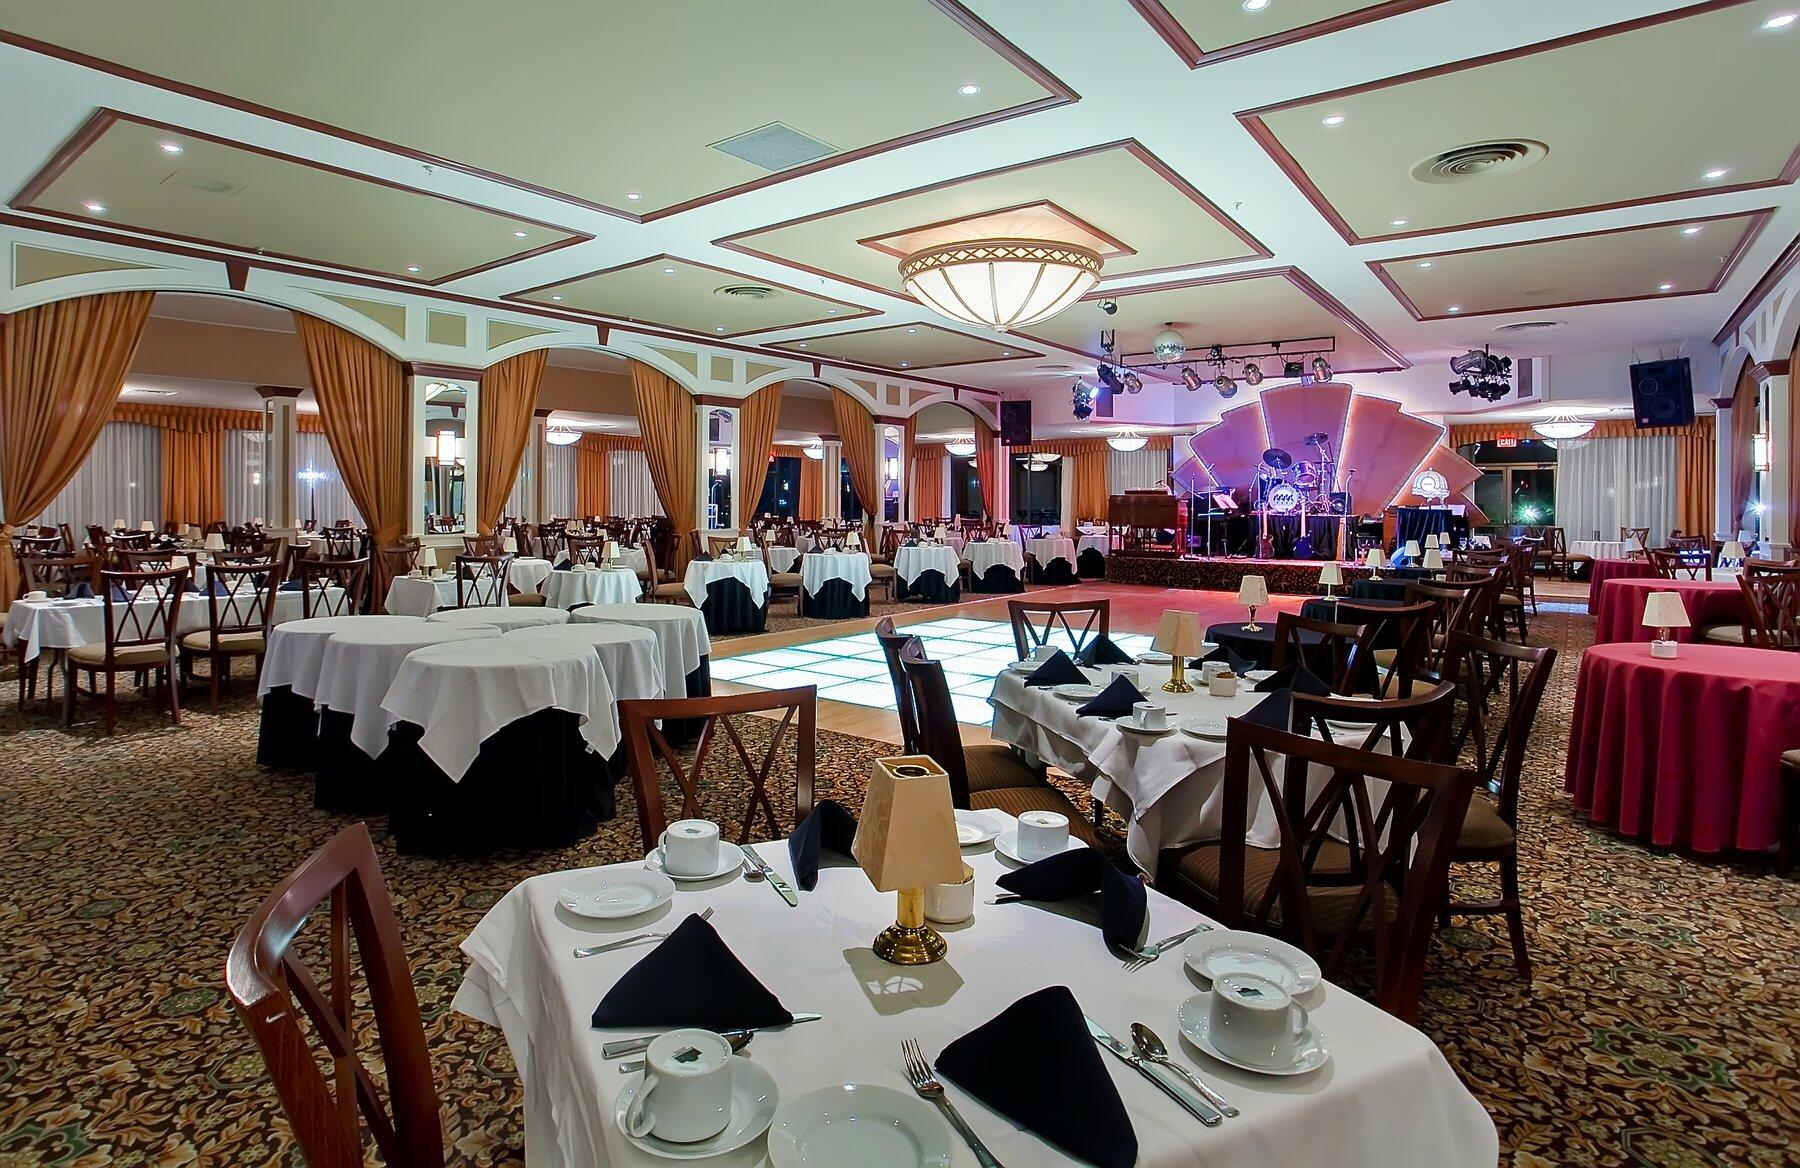 Event space set with tables and dance floor.